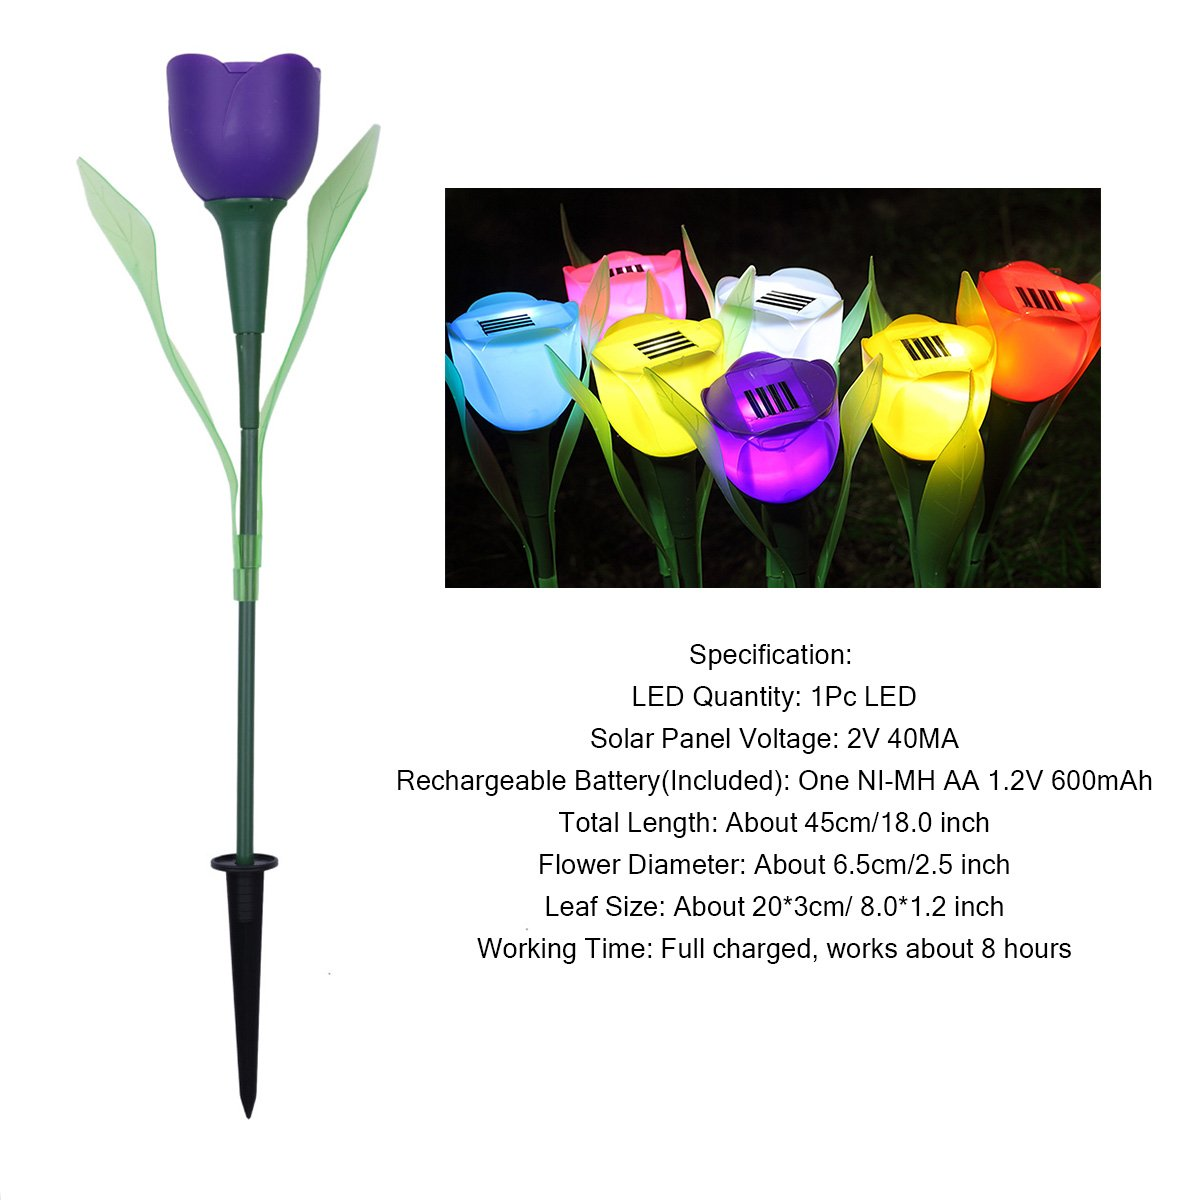 CHICTRY Tulip Path Light Solar Powered LED Light Outdoor Yard Garden Lawn Path Way Stake Lights Decorative Landscape LED Lamp Purple One Size